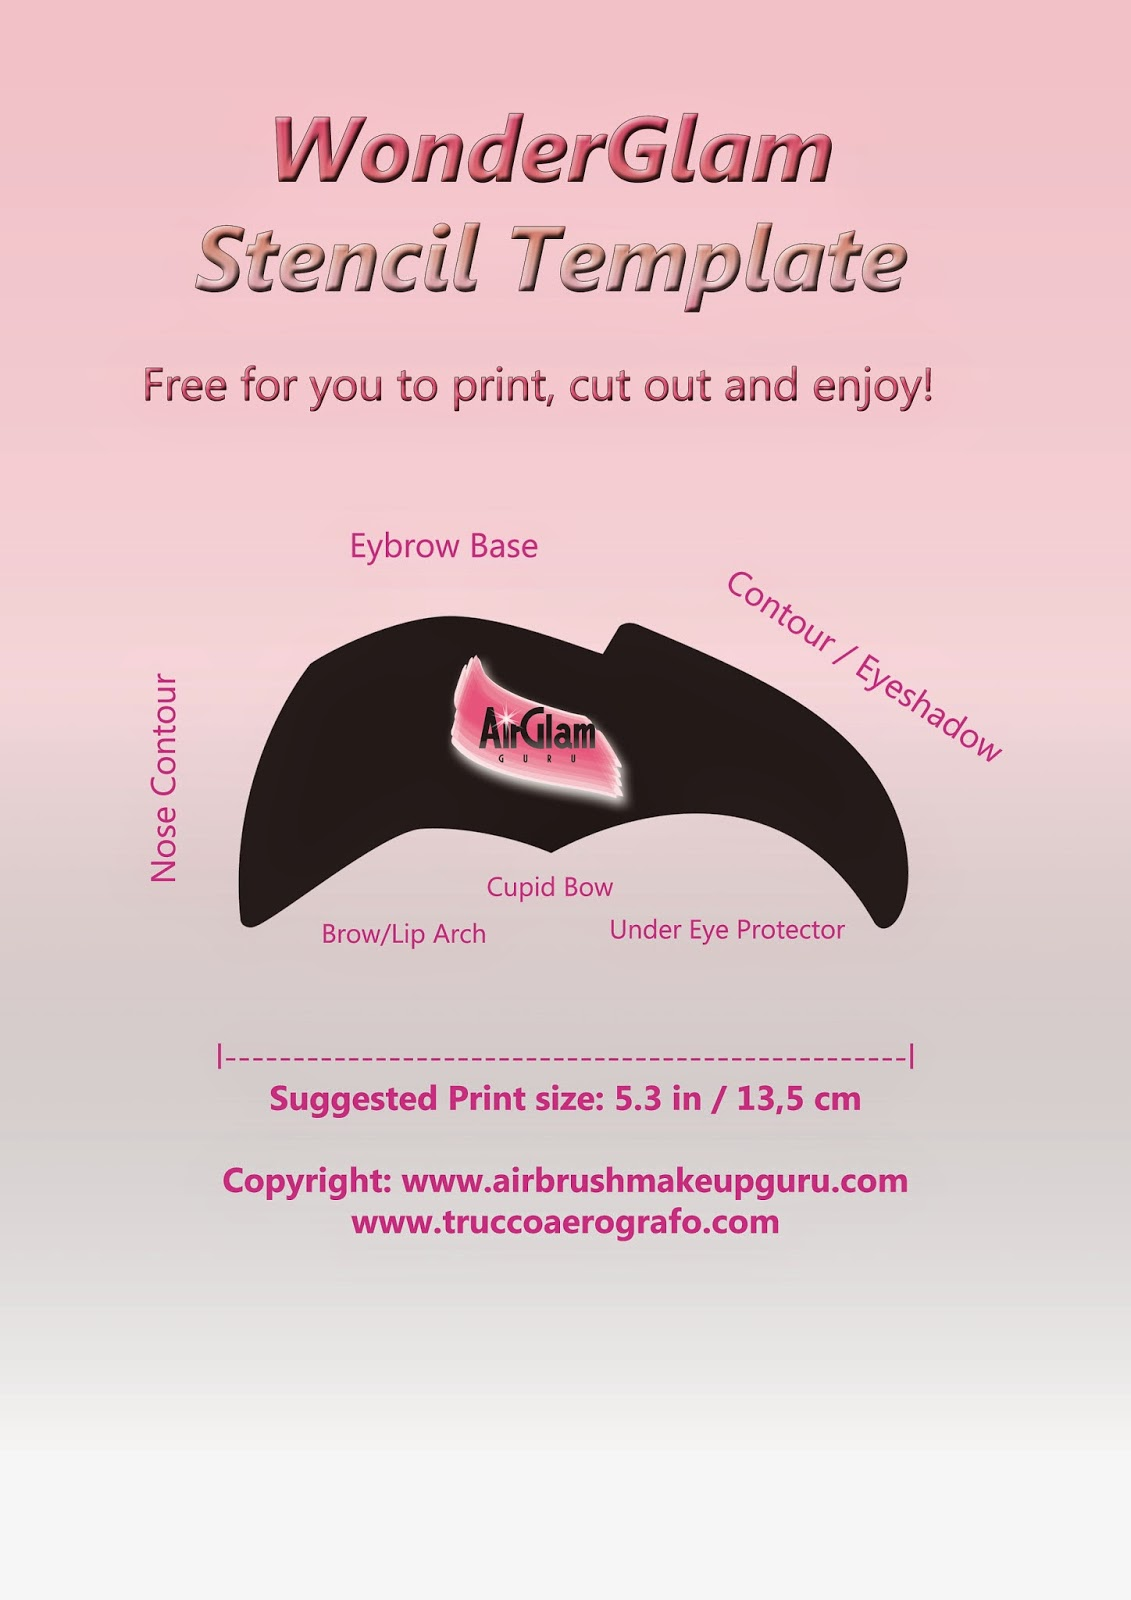 The Airbrush Makeup Guru: FREE STENCIL TEMPLATES